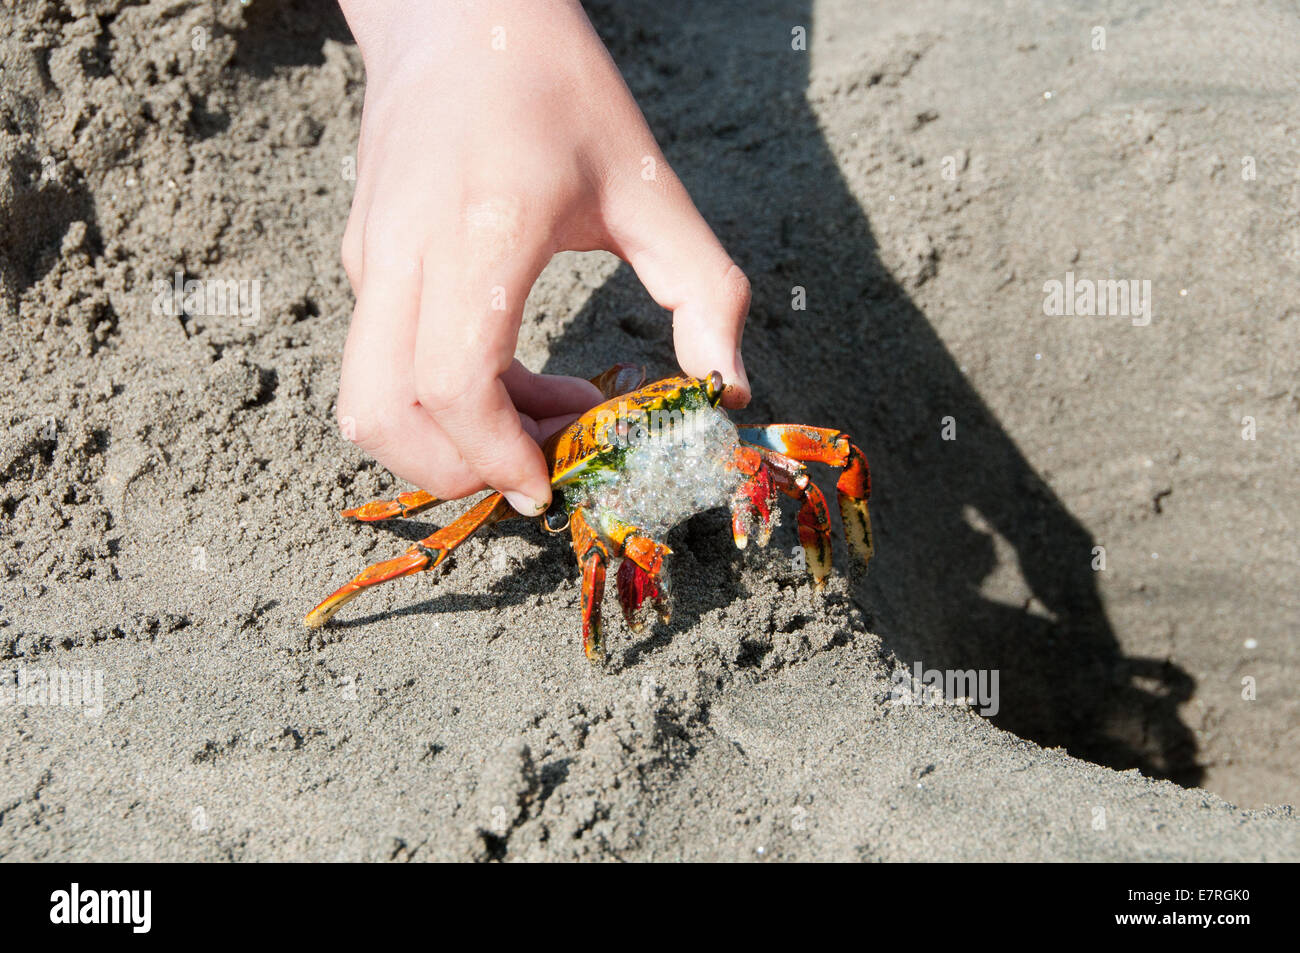 Angry Grapsidae Crab Frothing at the Mouth - Stock Image